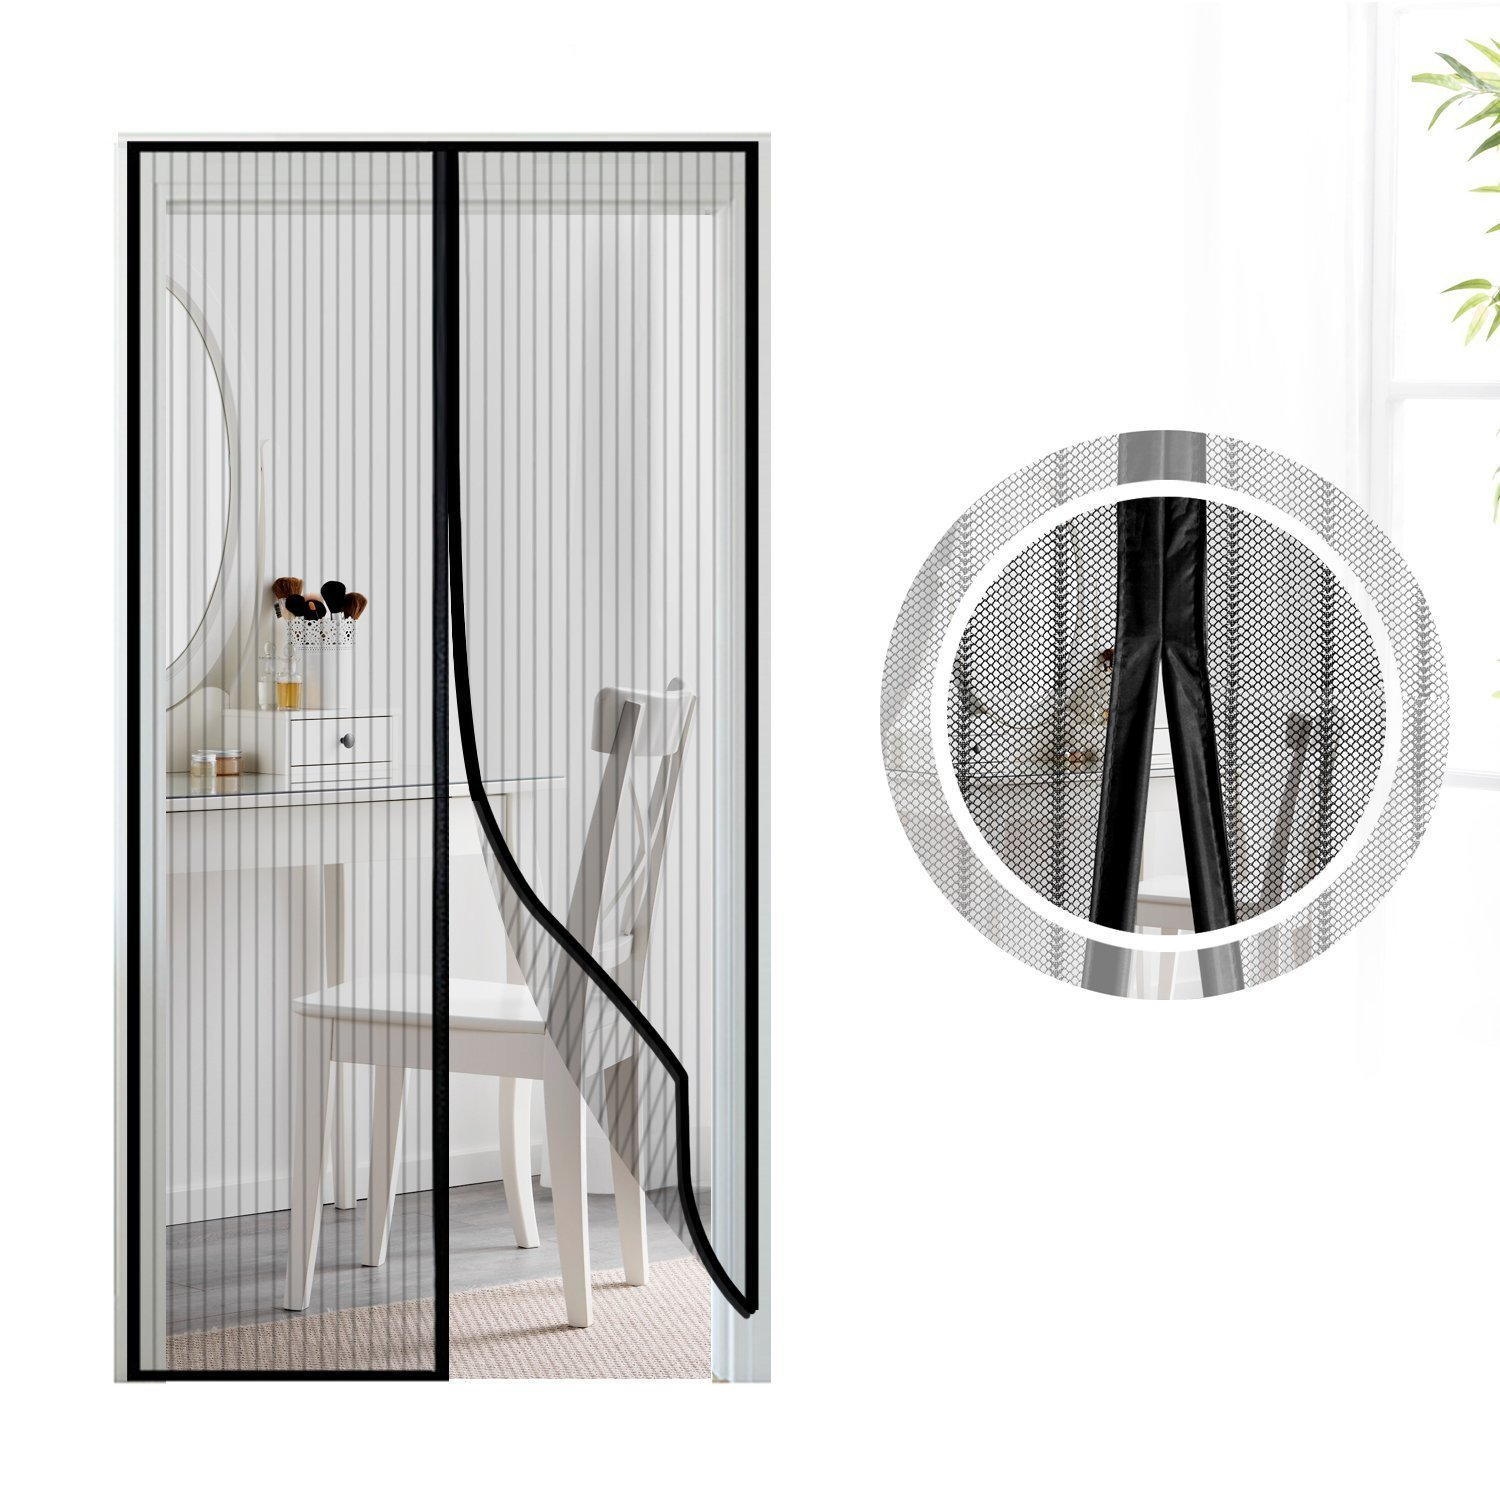 Magnetic Screen Door, Samione Magnetic Flying Insect Door Screen/Curtain,Anti-mosquito Curtain Insect Mosquito Bug Mesh Black (90x 210CM)